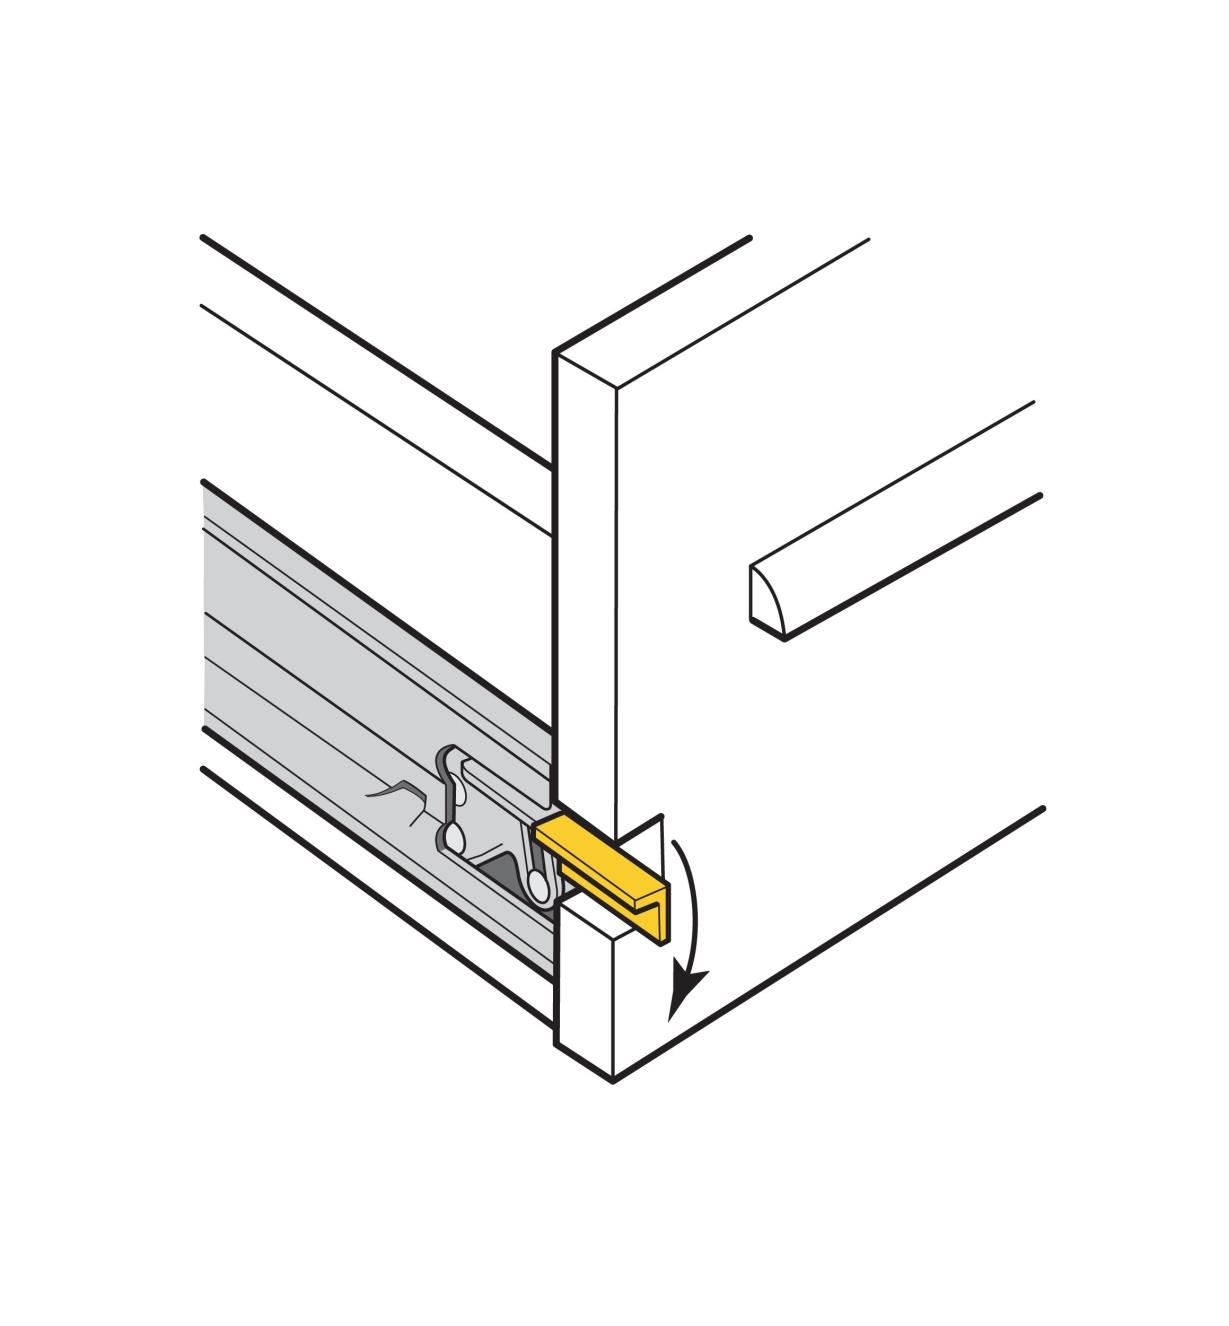 Illustration of release lever on a slide installed in a drawer